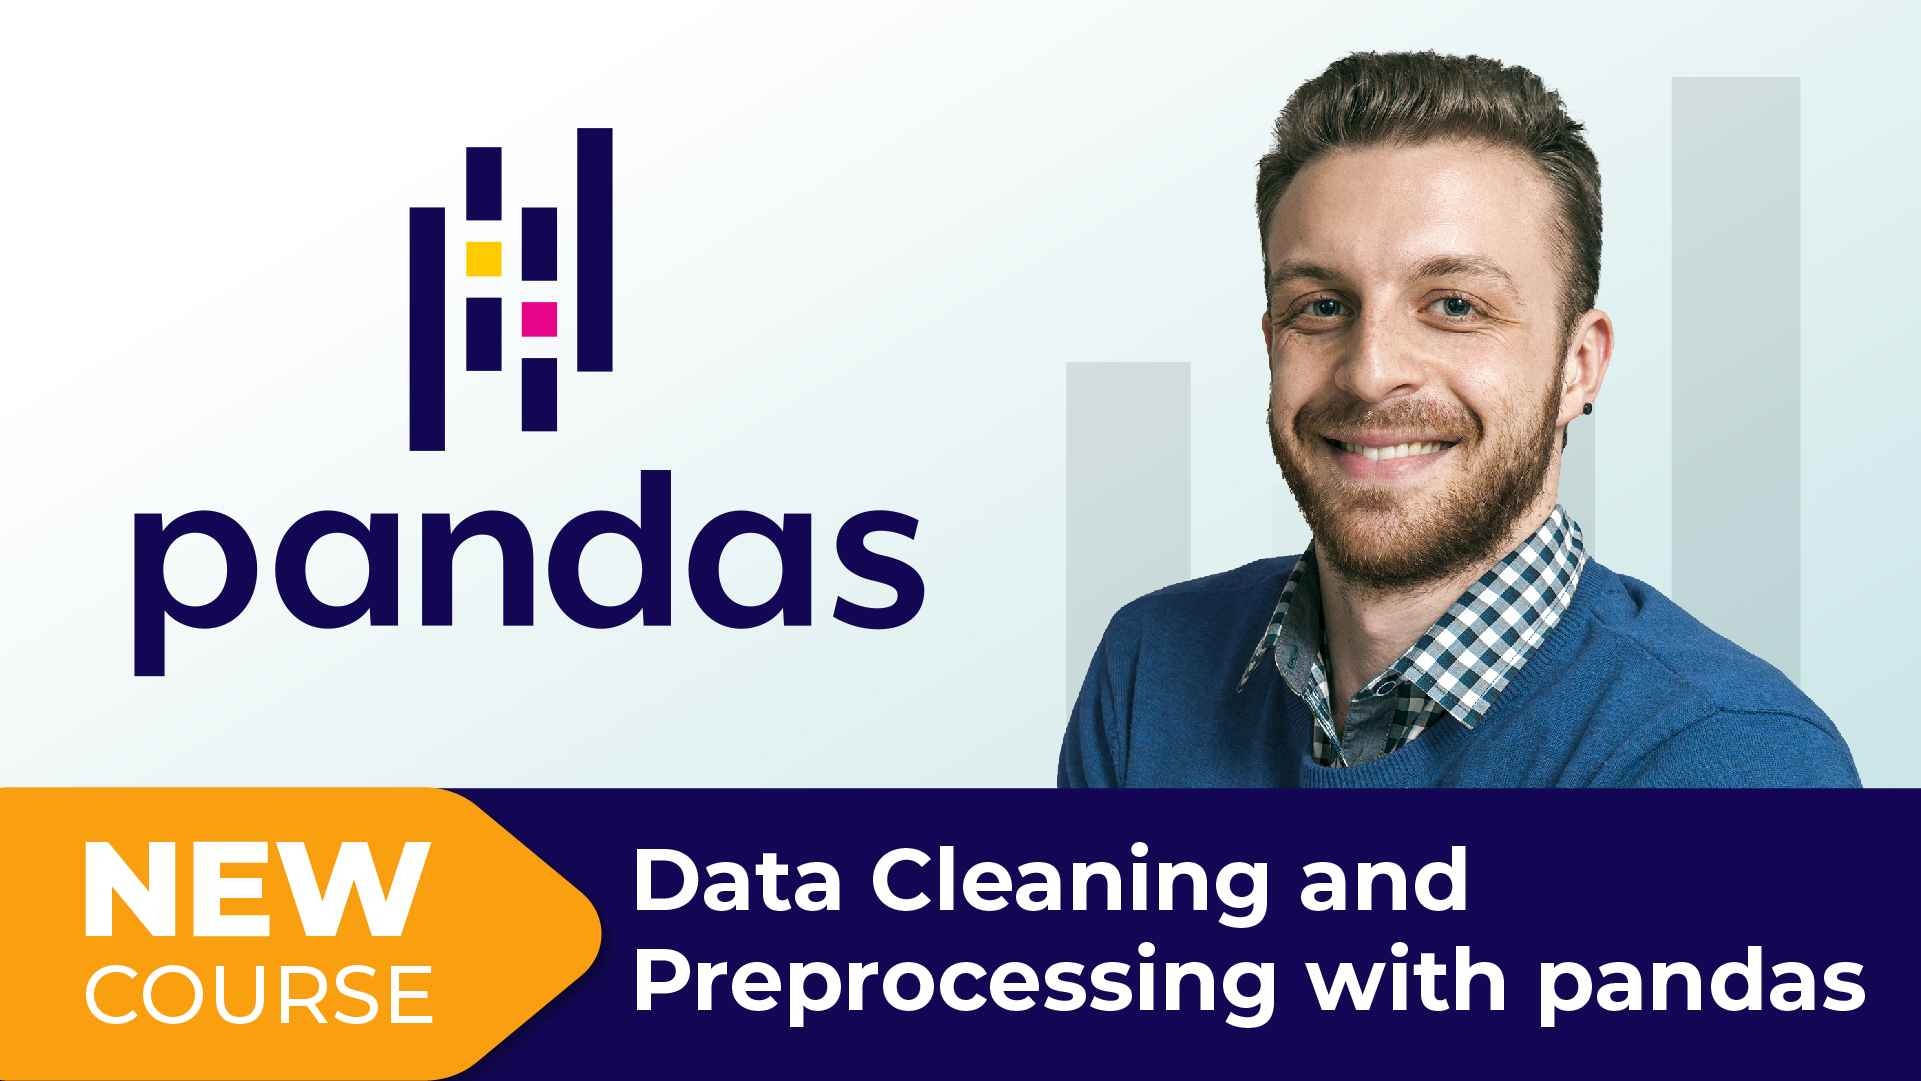 Data Cleaning and Preprocessing with pandas course